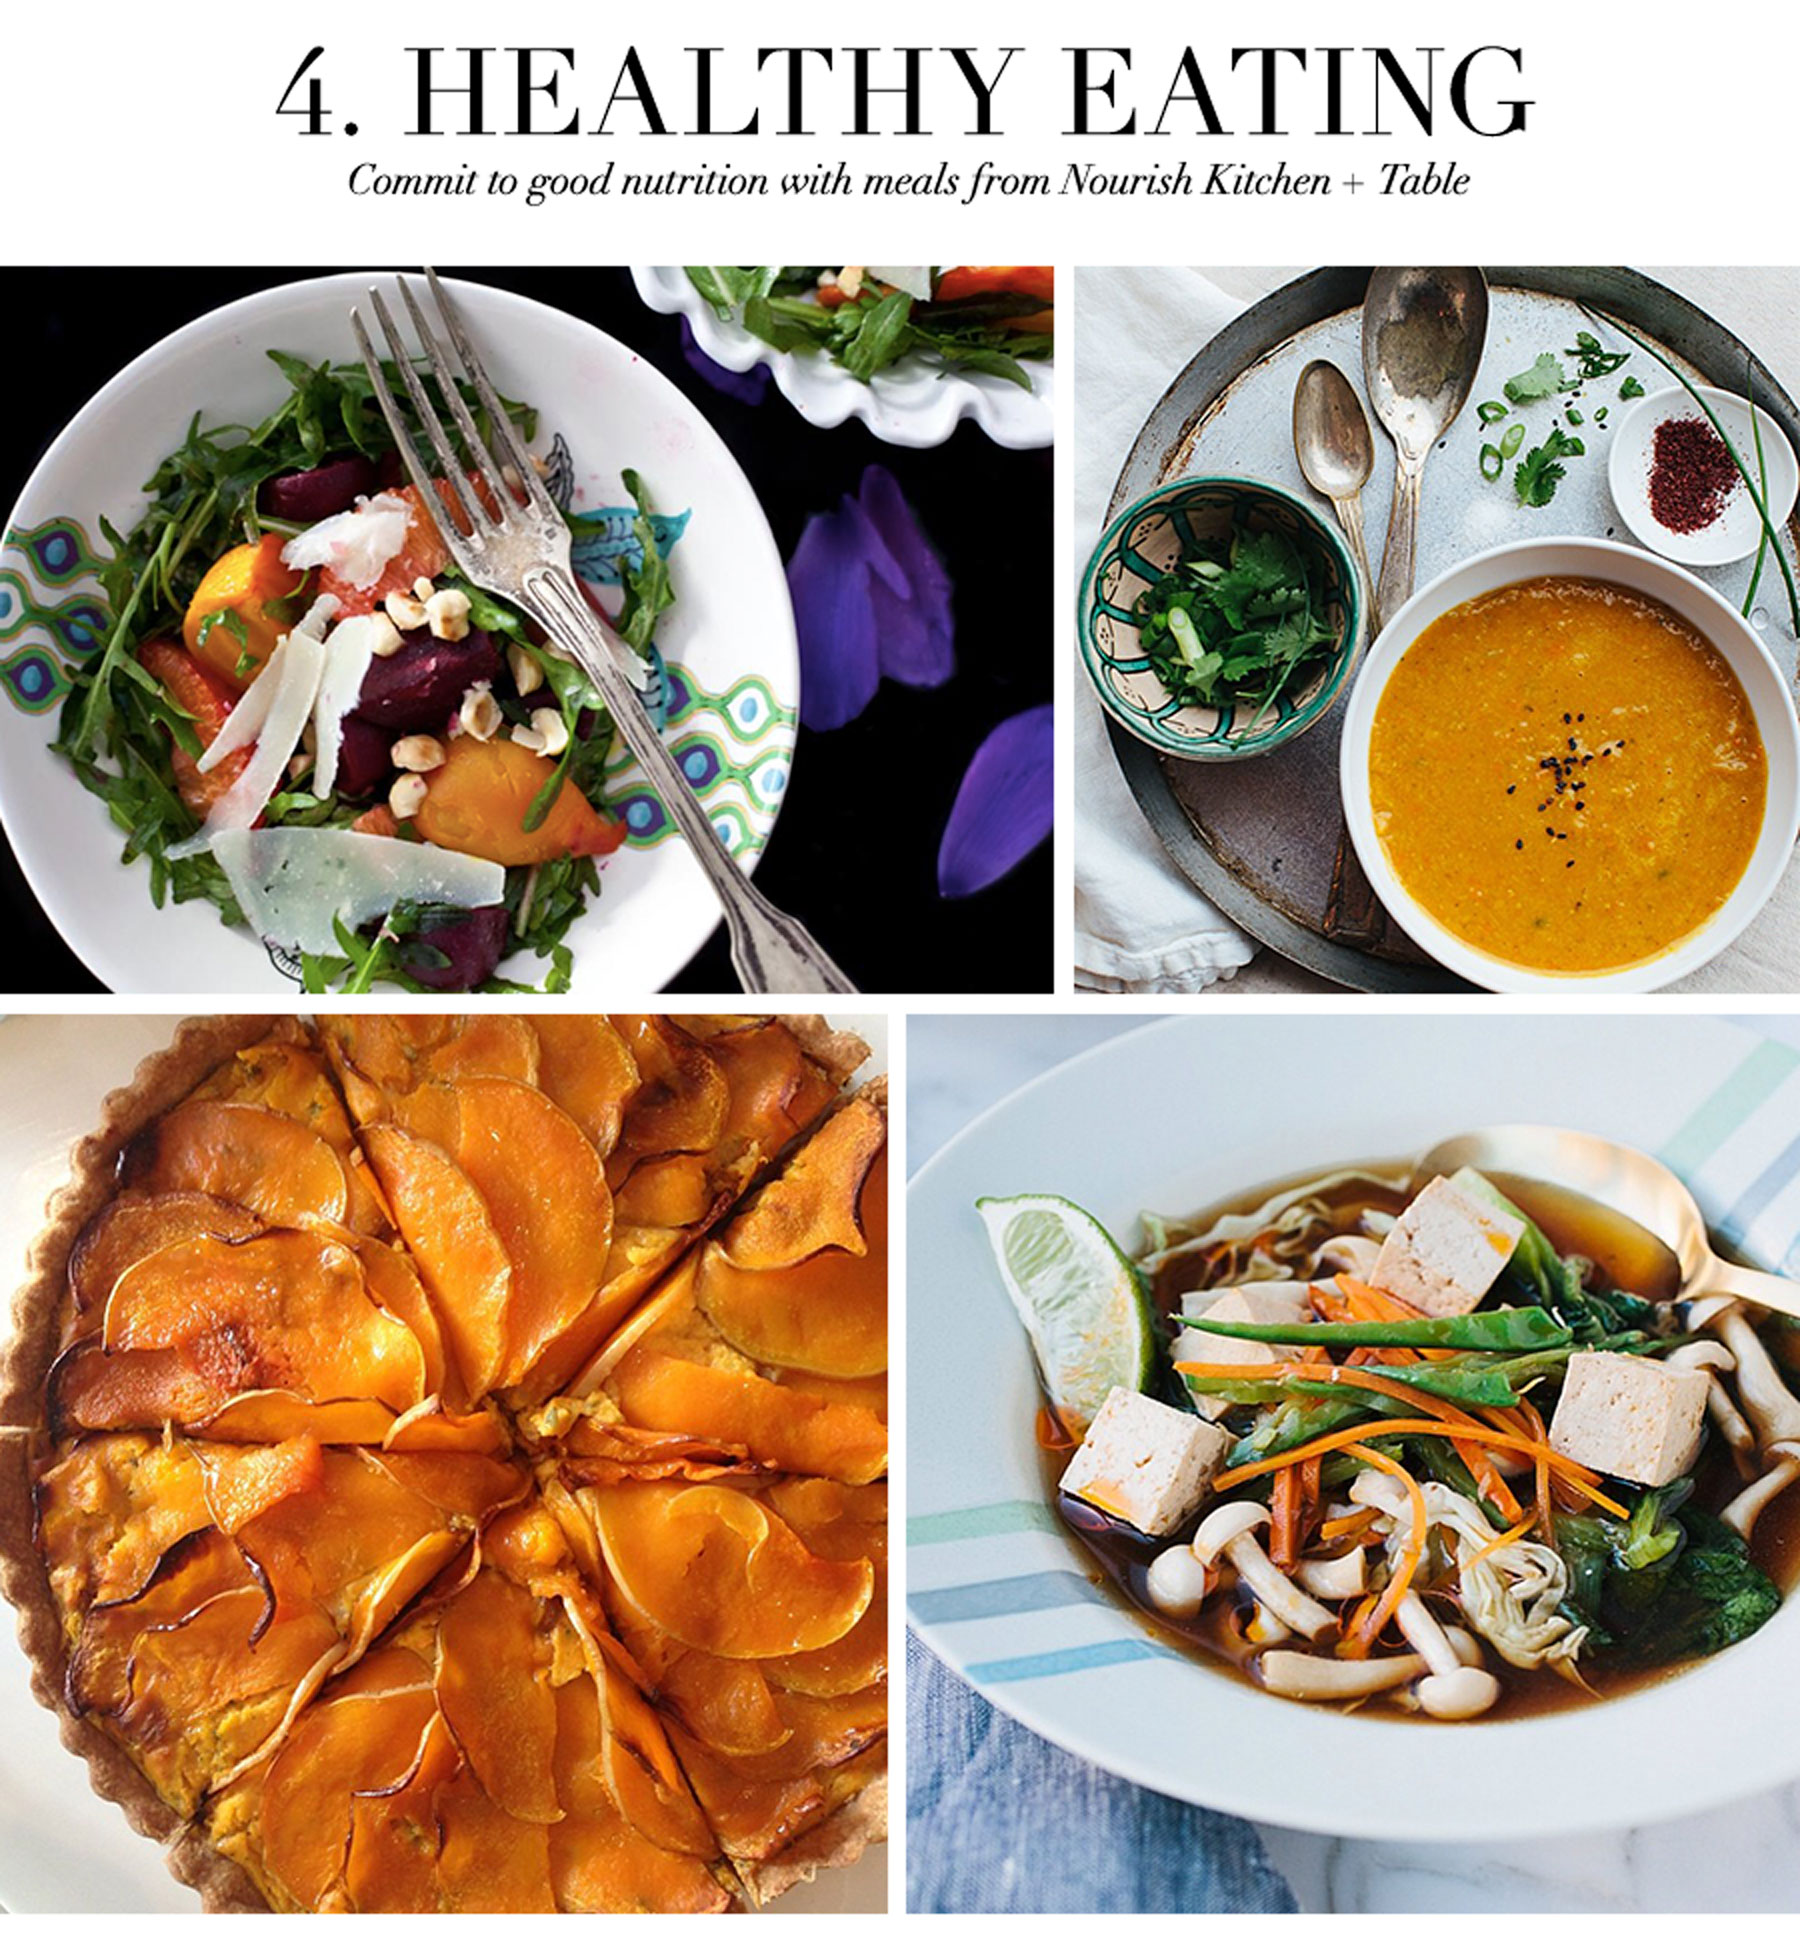 Ceci Johnson's Pamper-Yourself Picks - Healthy Eating - Commit to good nutrition with meals from Nourish Kitchen + Table